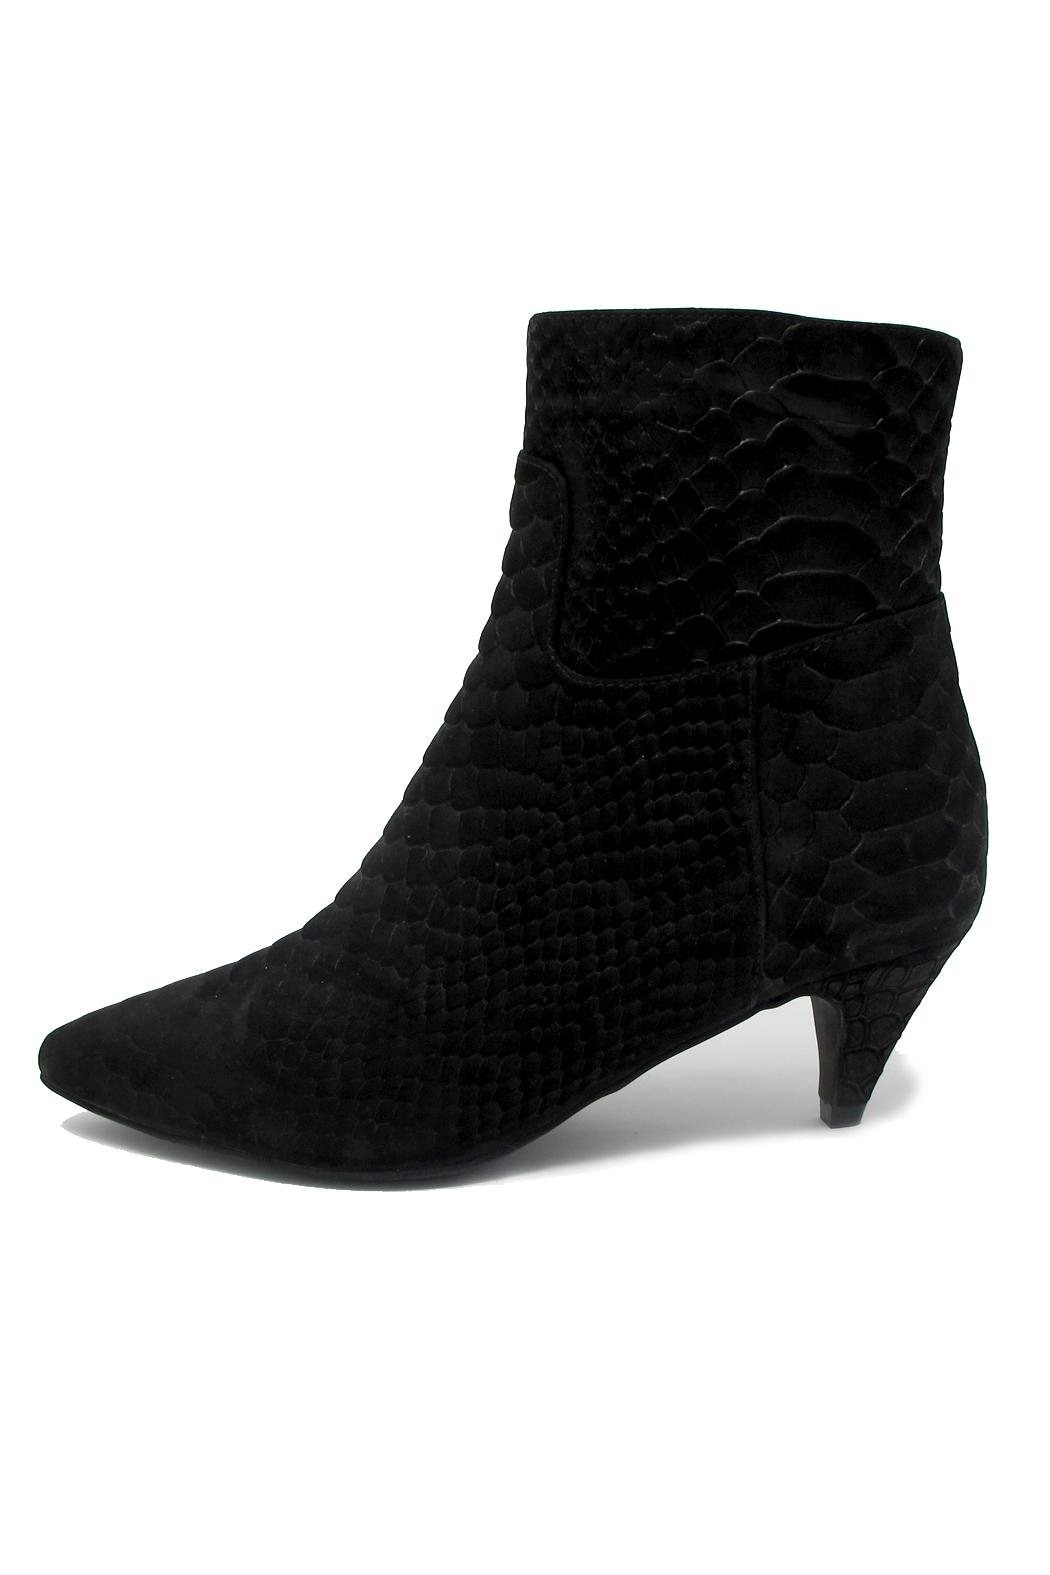 Jeffrey Campbell Black Snake Bootie - Main Image